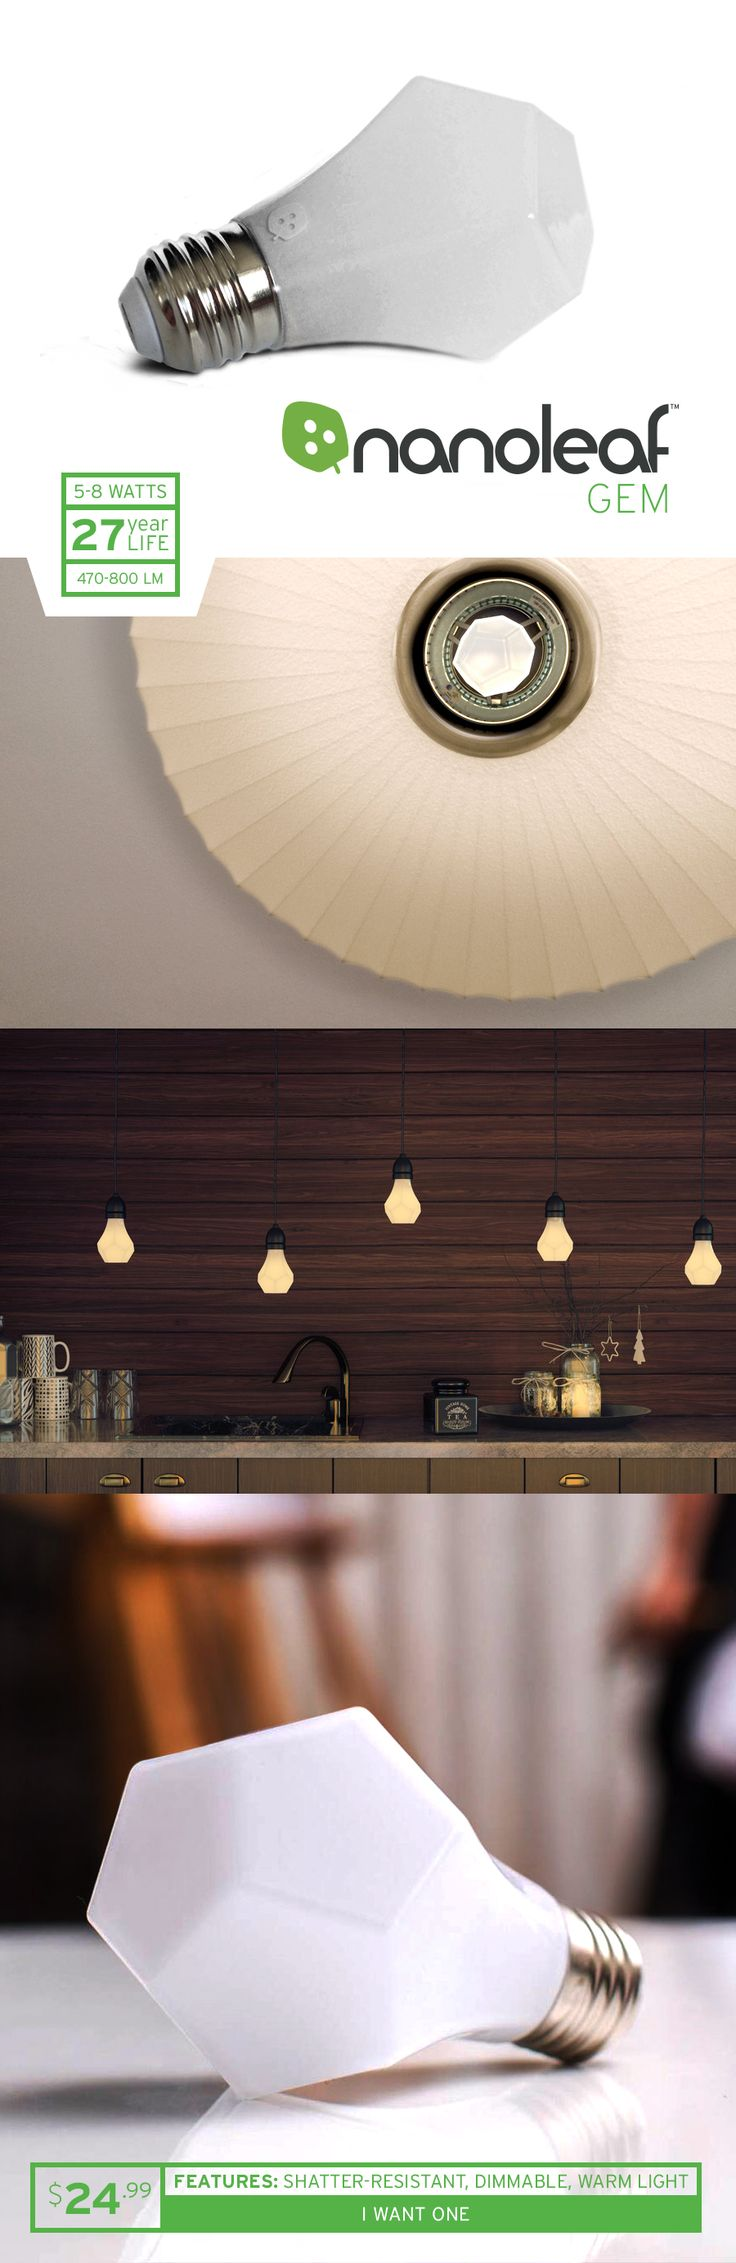 Decorate your home with light - the new Gem LED light bulb by Nanoleaf is the perfect light bulb. It's highly energy efficient, gives off a warm tungsten light and will last for 27 years. | $24.99 each (free shipping on orders over $100) #spon #lighting #hightech #ecofriendly